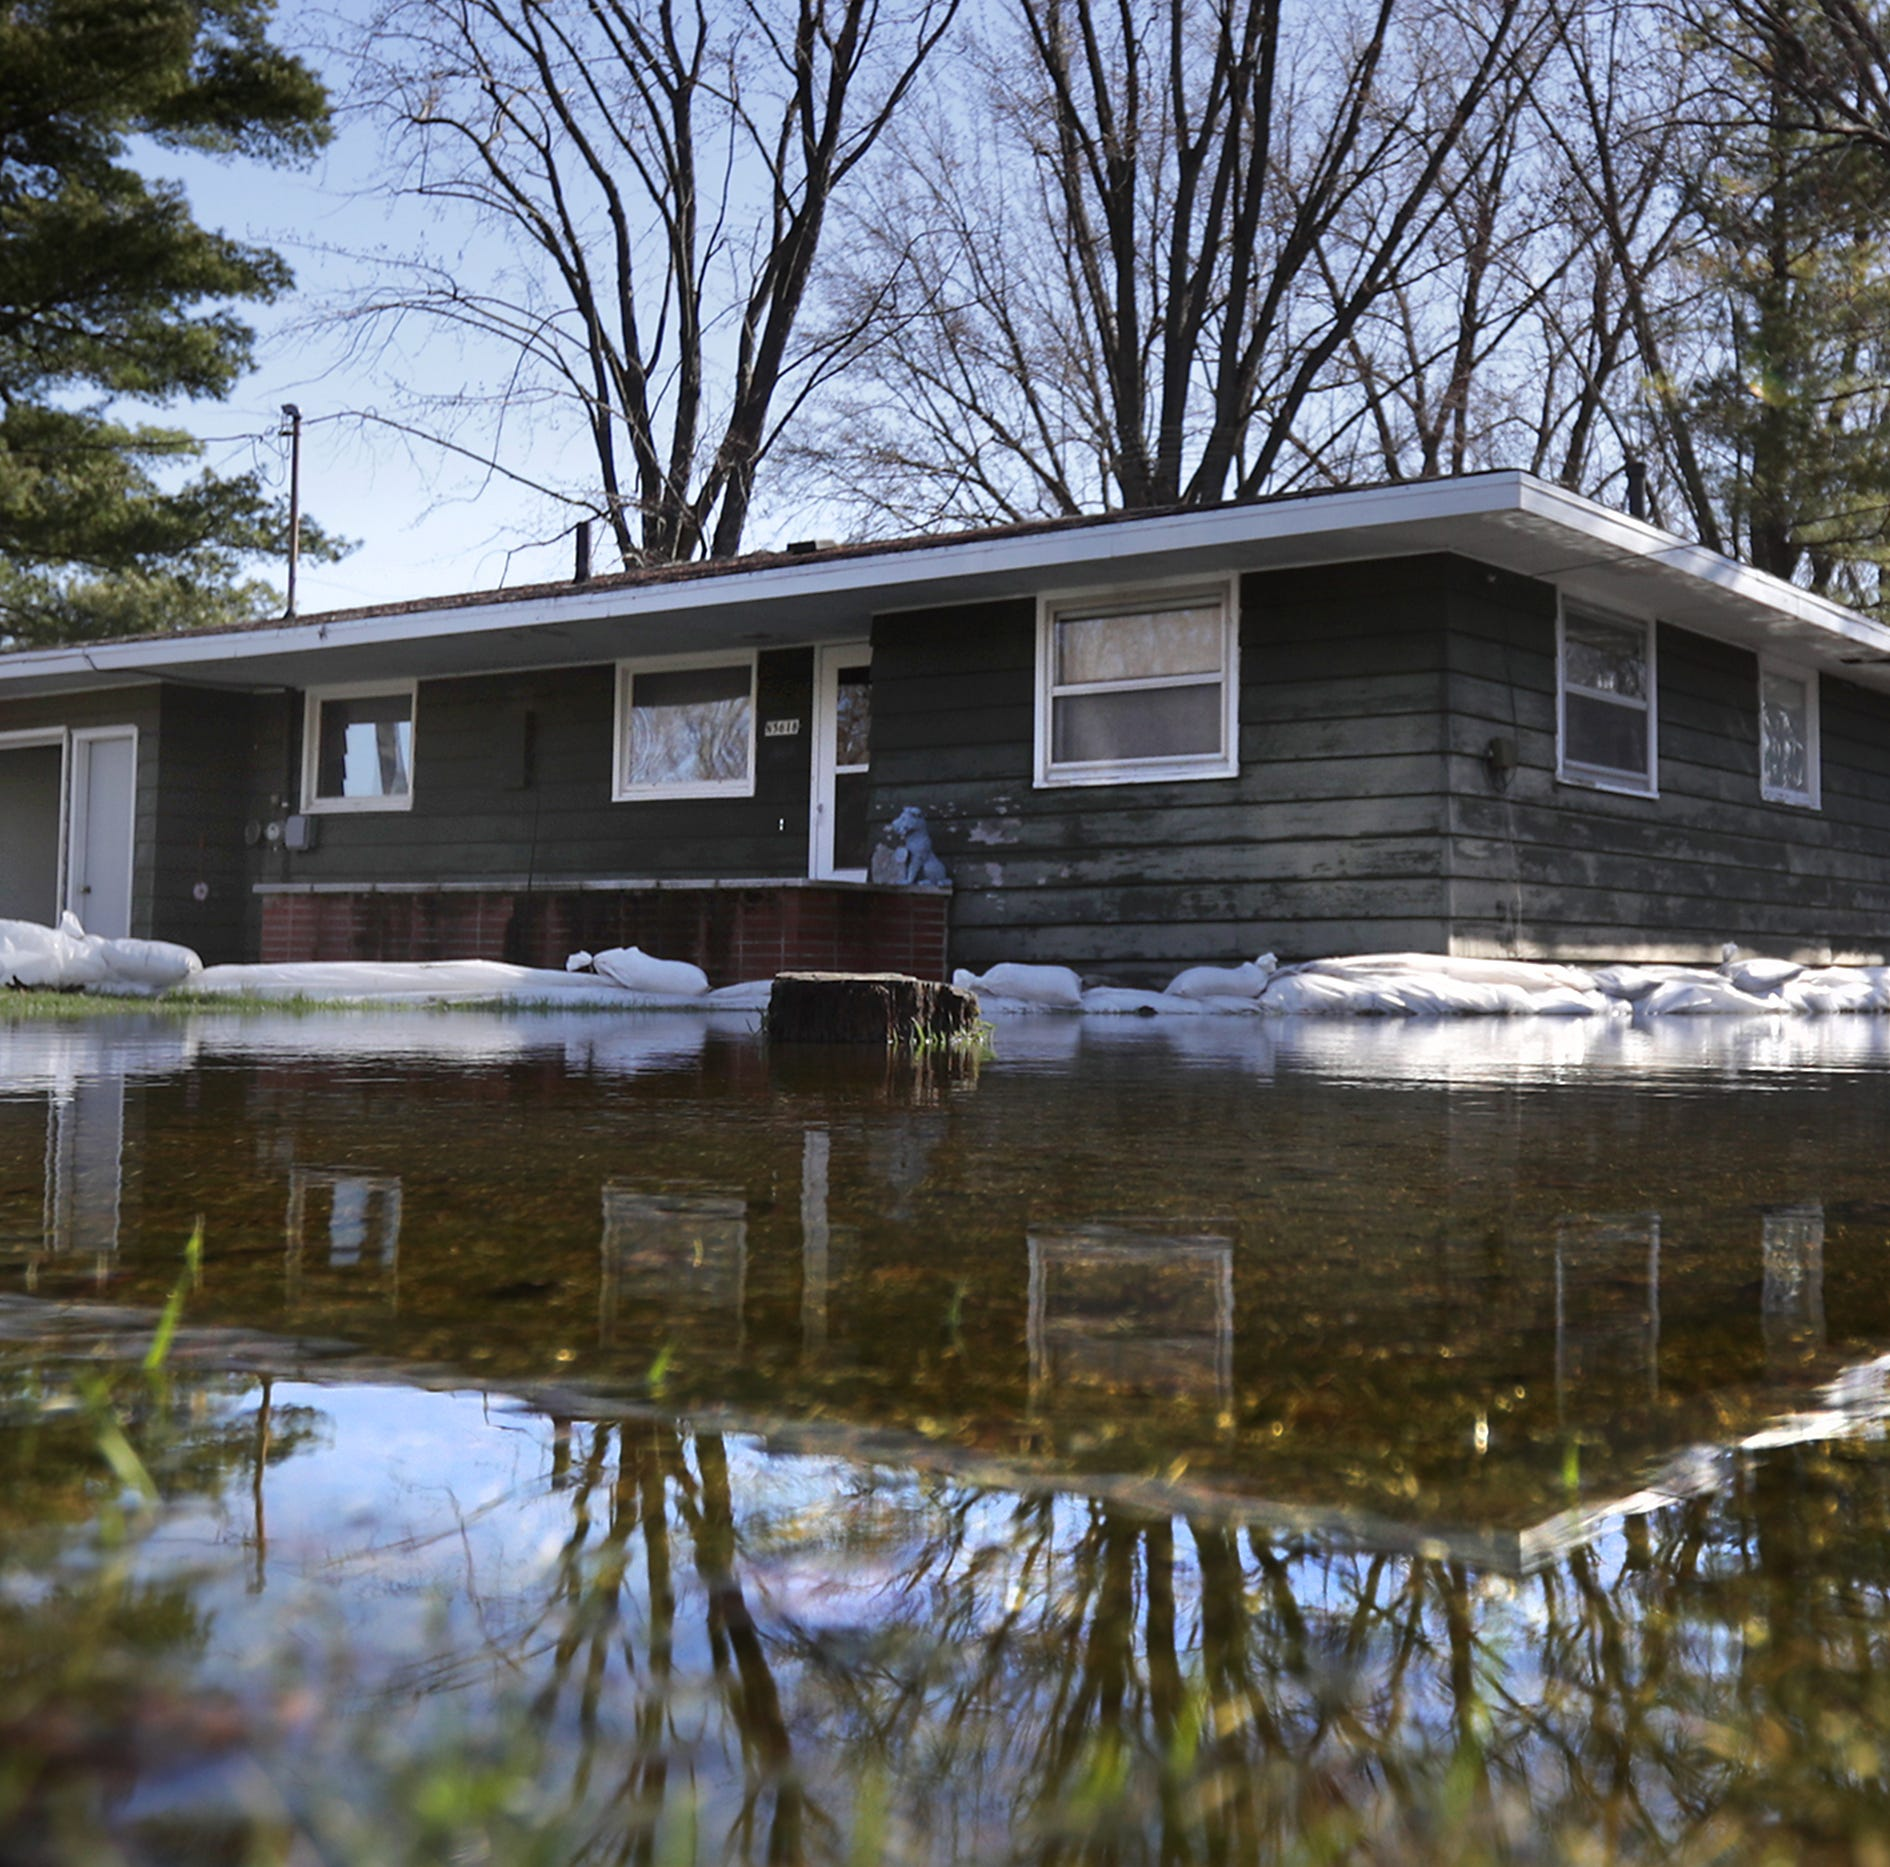 Waterlogged: Shiocton copes with flooding as the Wolf River exceeds 13 feet